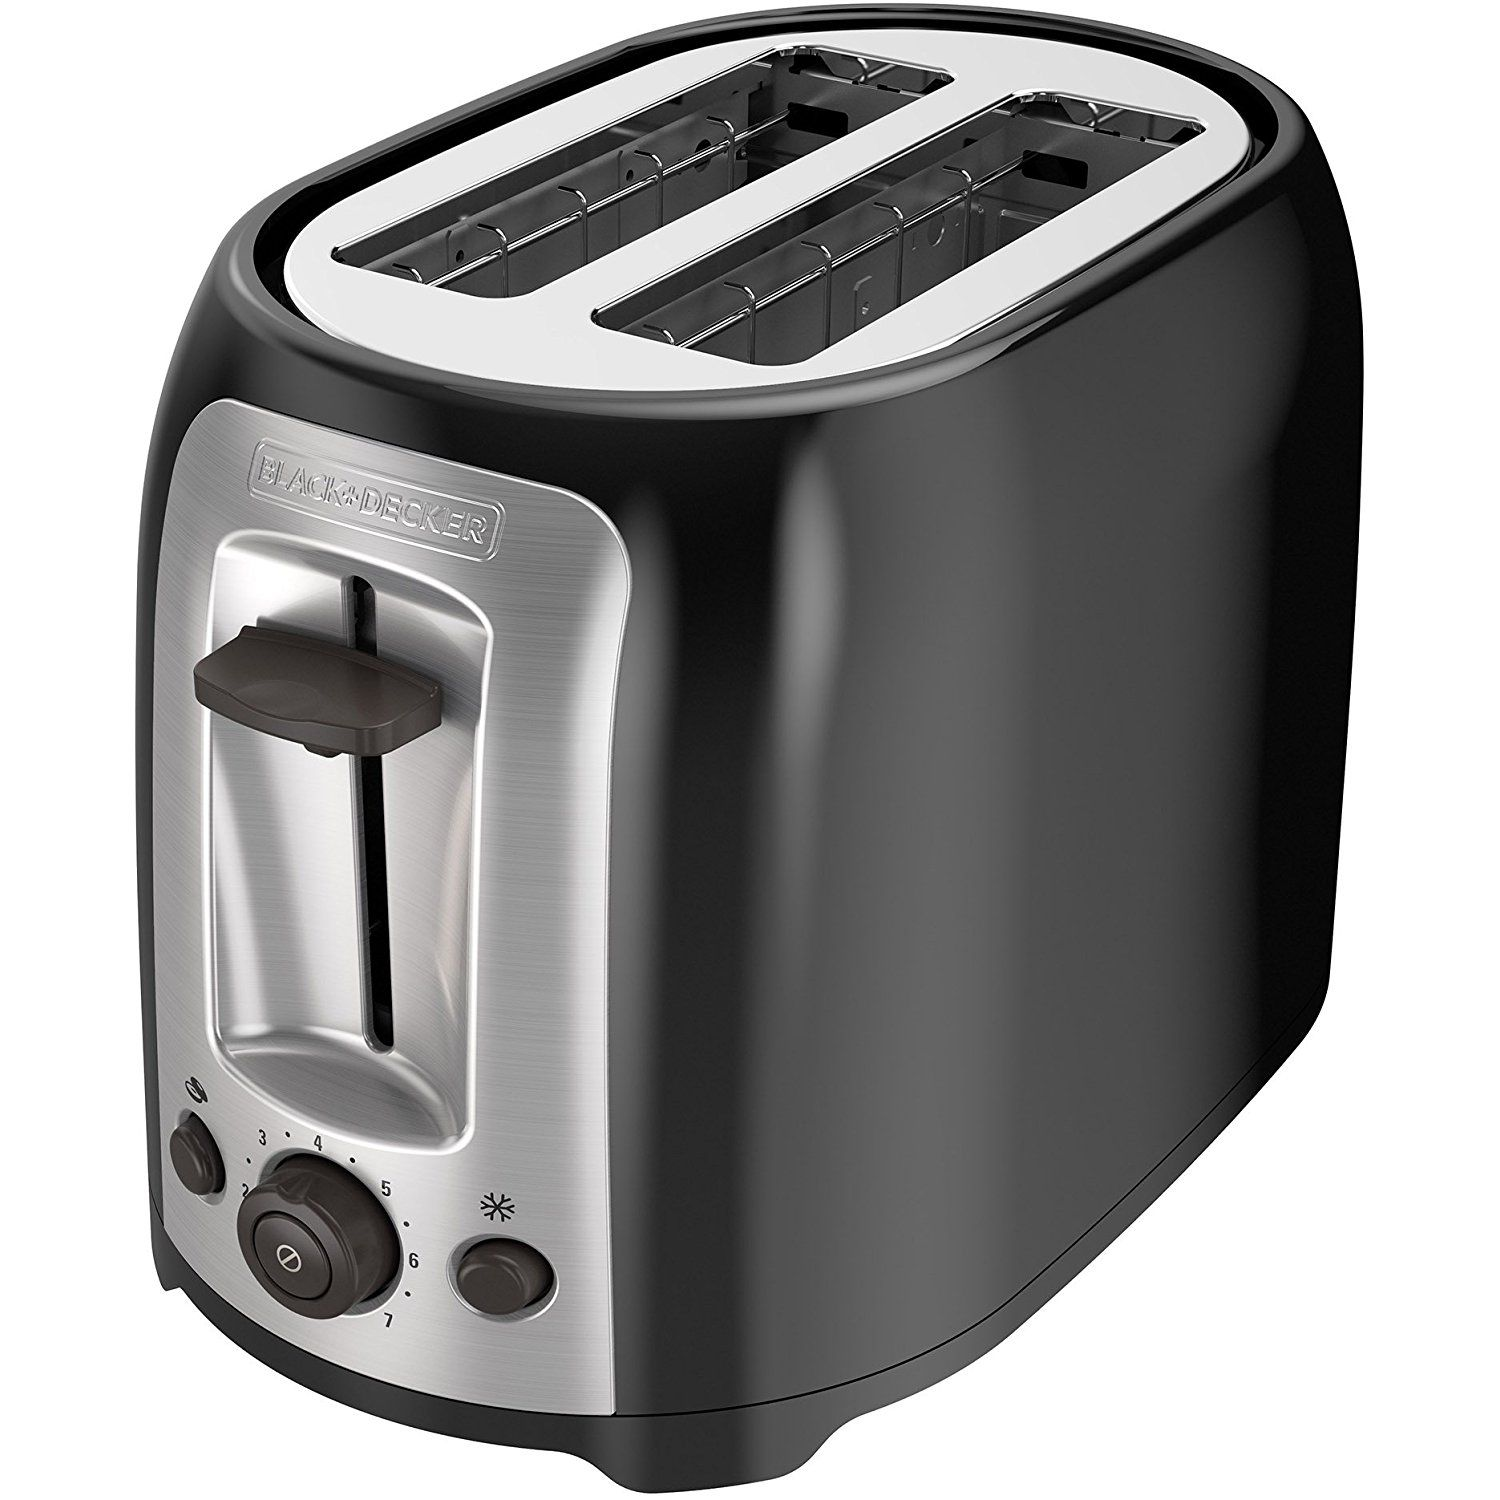 BLACK DECKER 2Slice Extra Wide Slot Toaster, Classic Oval